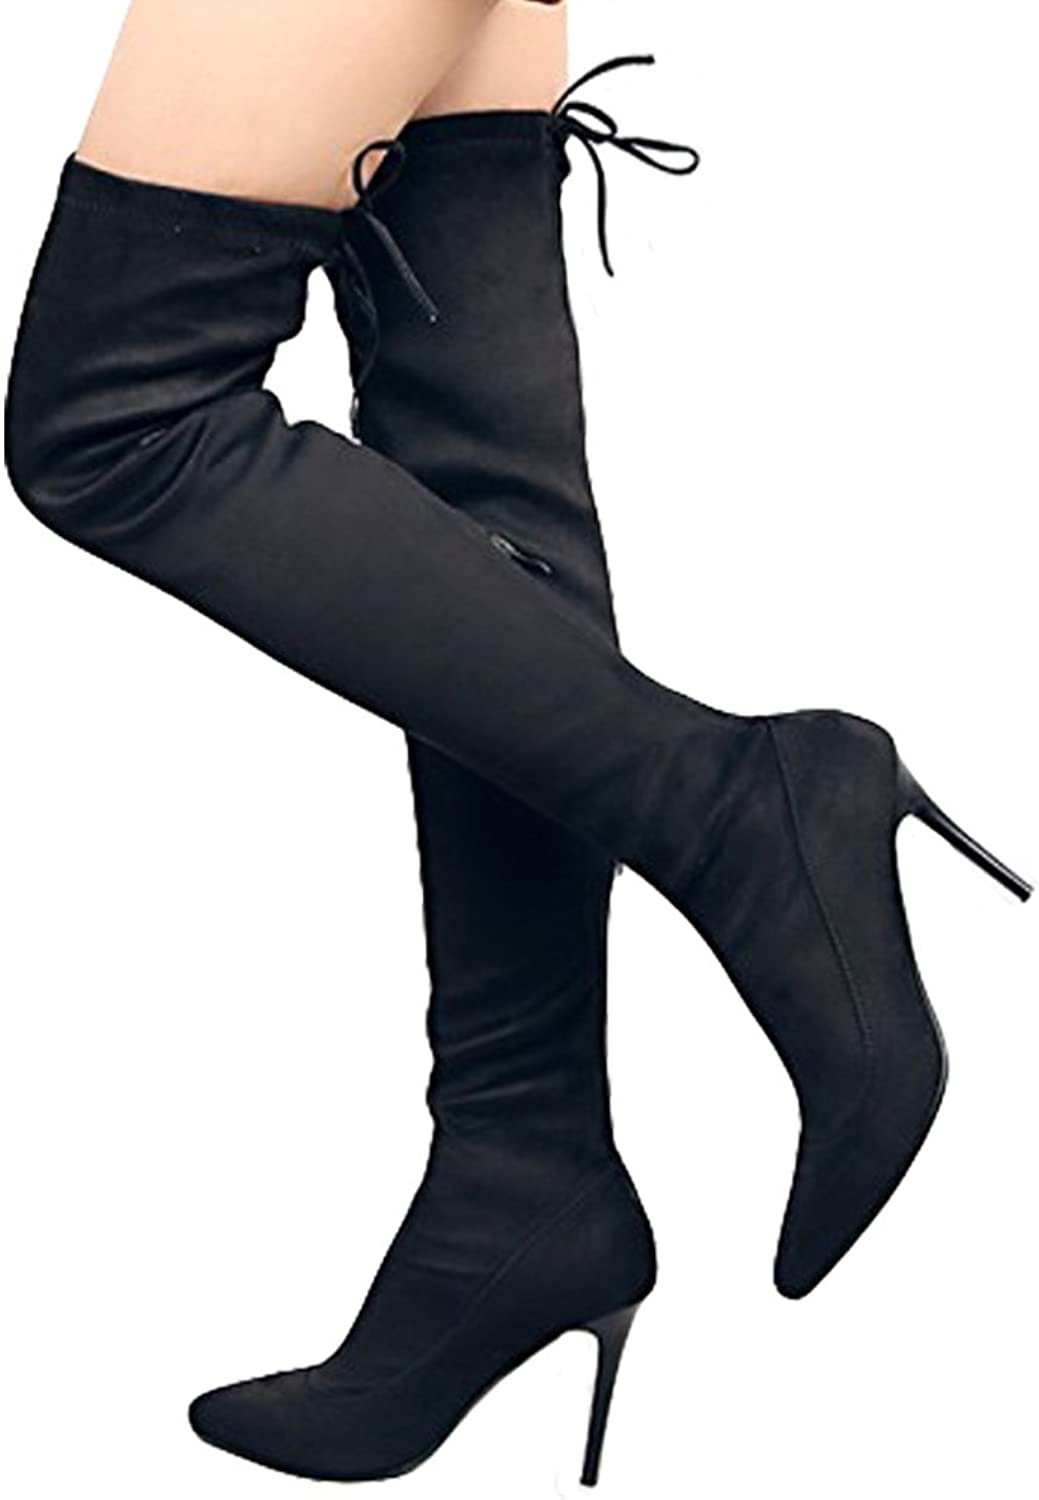 Seacat Women's Suede Over The Knee Lace-up Zipper Thigh High Stiletto Heel Boots